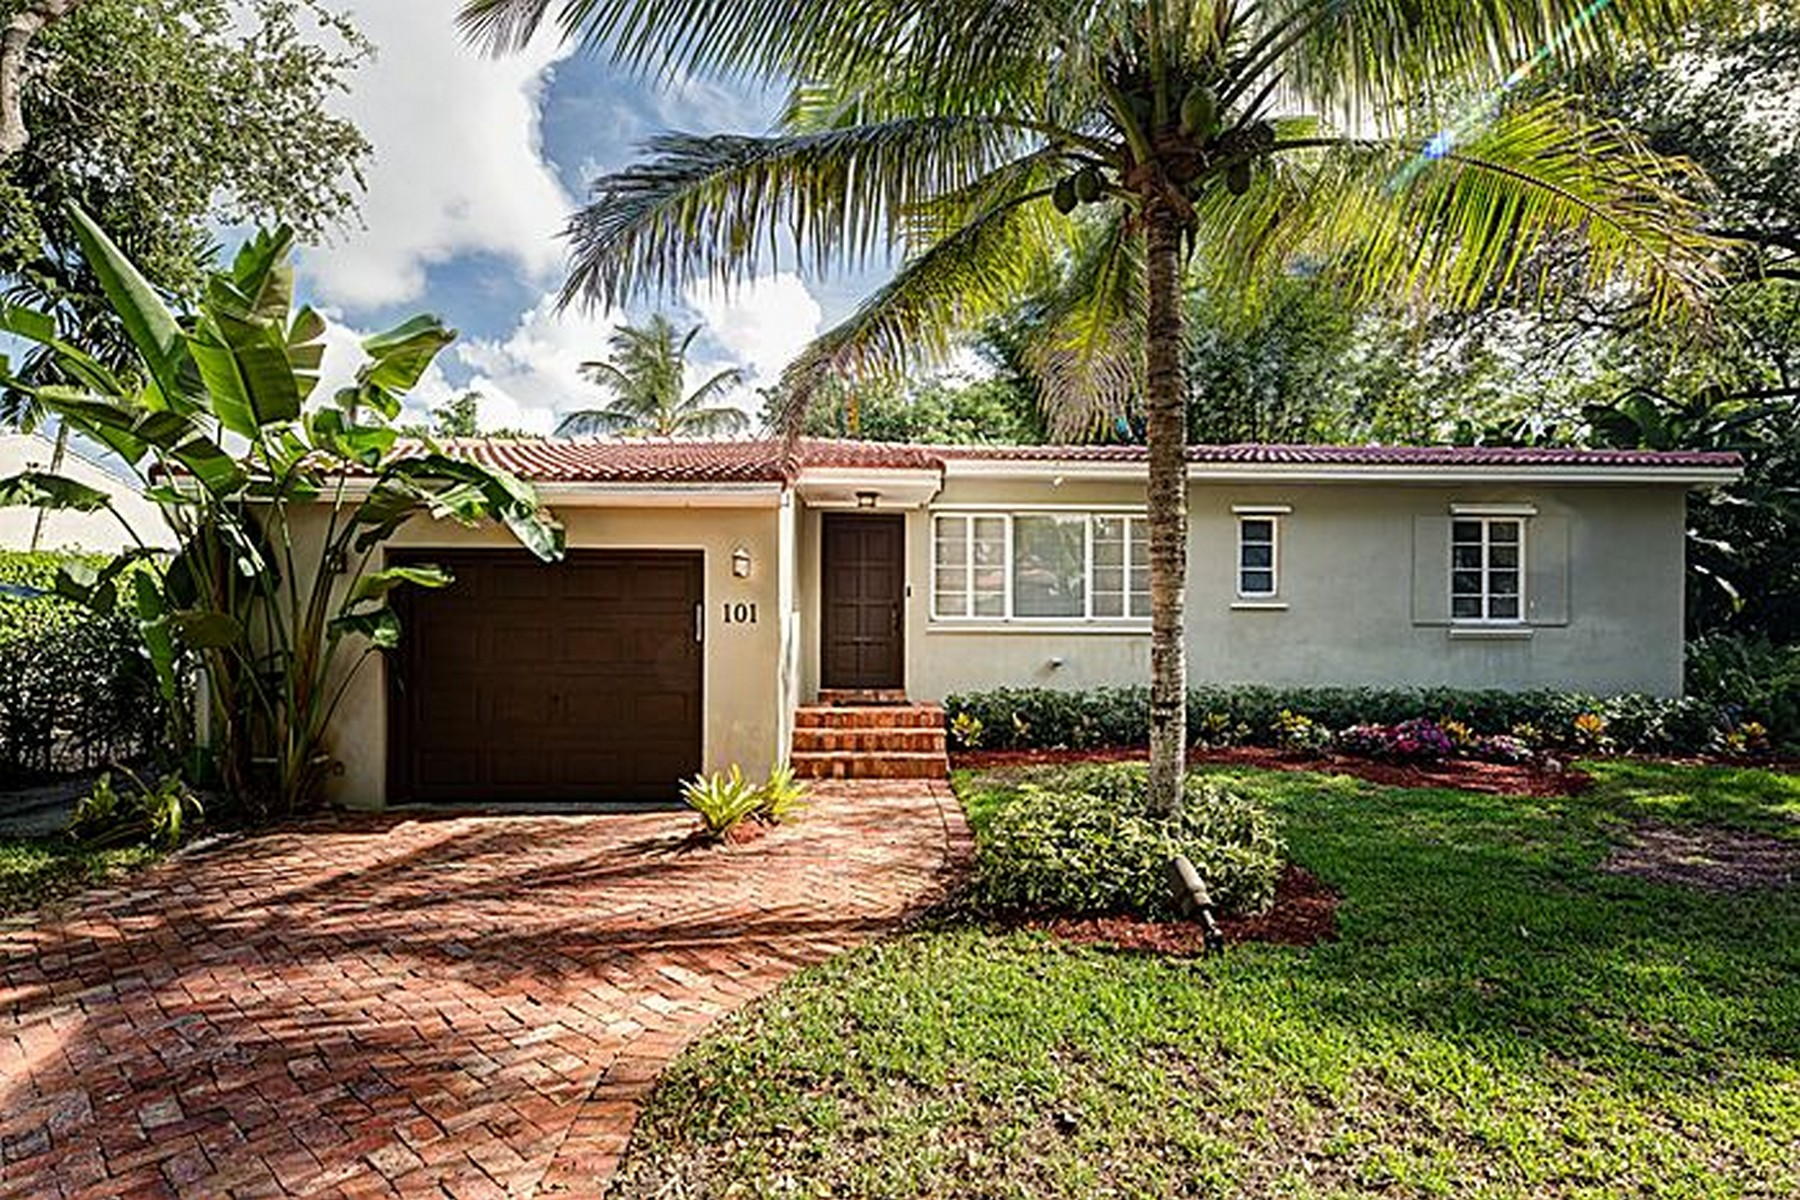 Single Family Home for Sale at 101 NW 101 St Miami Shores, Florida 33150 United States